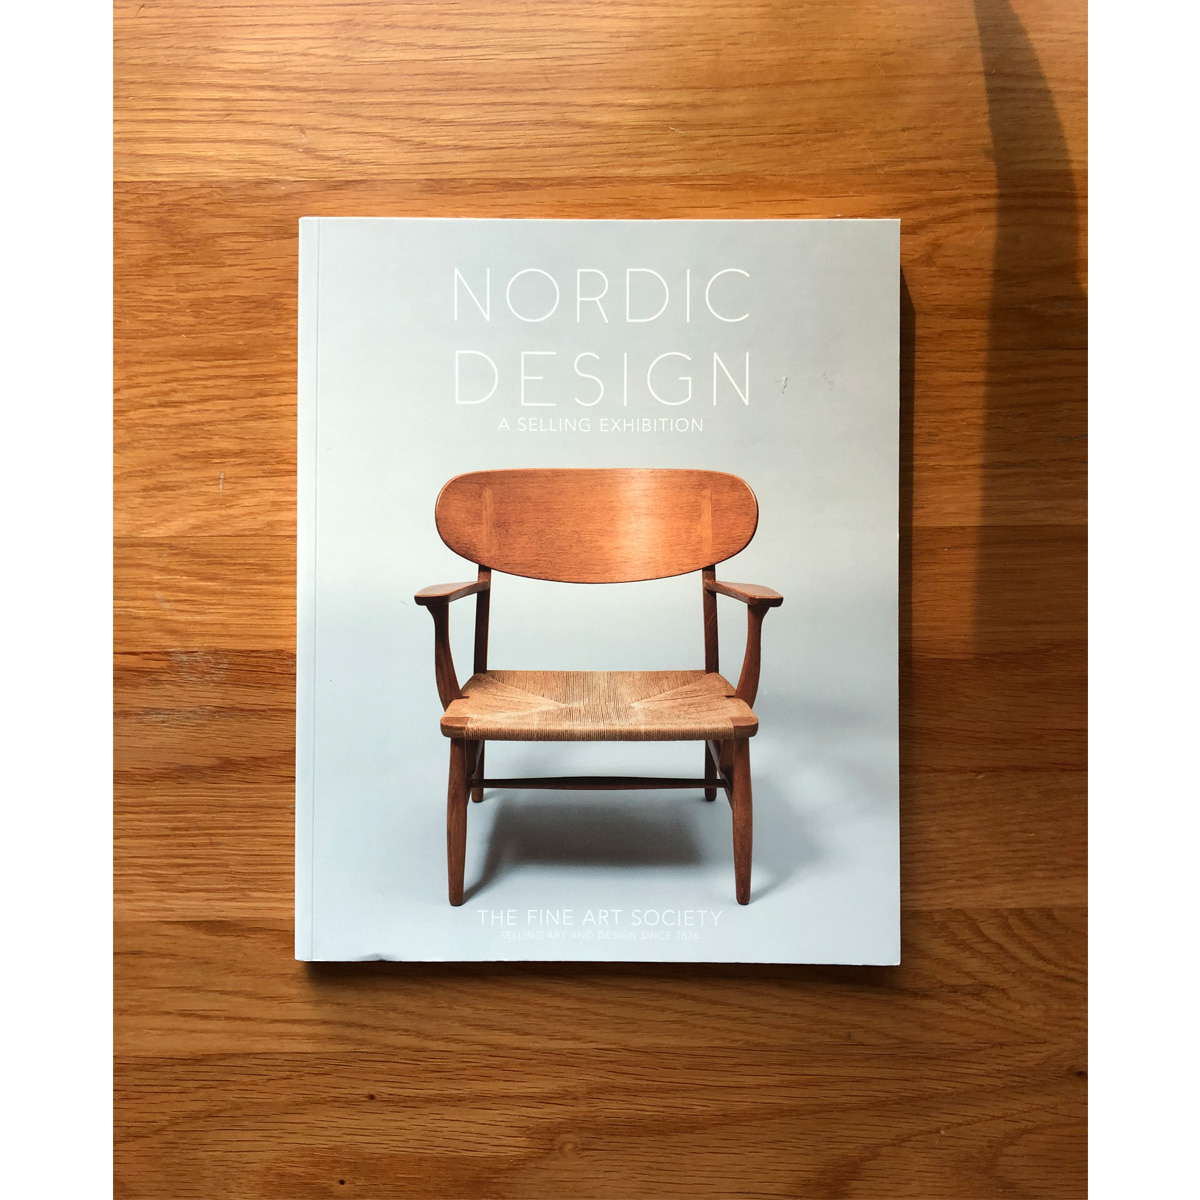 NORDIC DESIGN: a selling exhibition